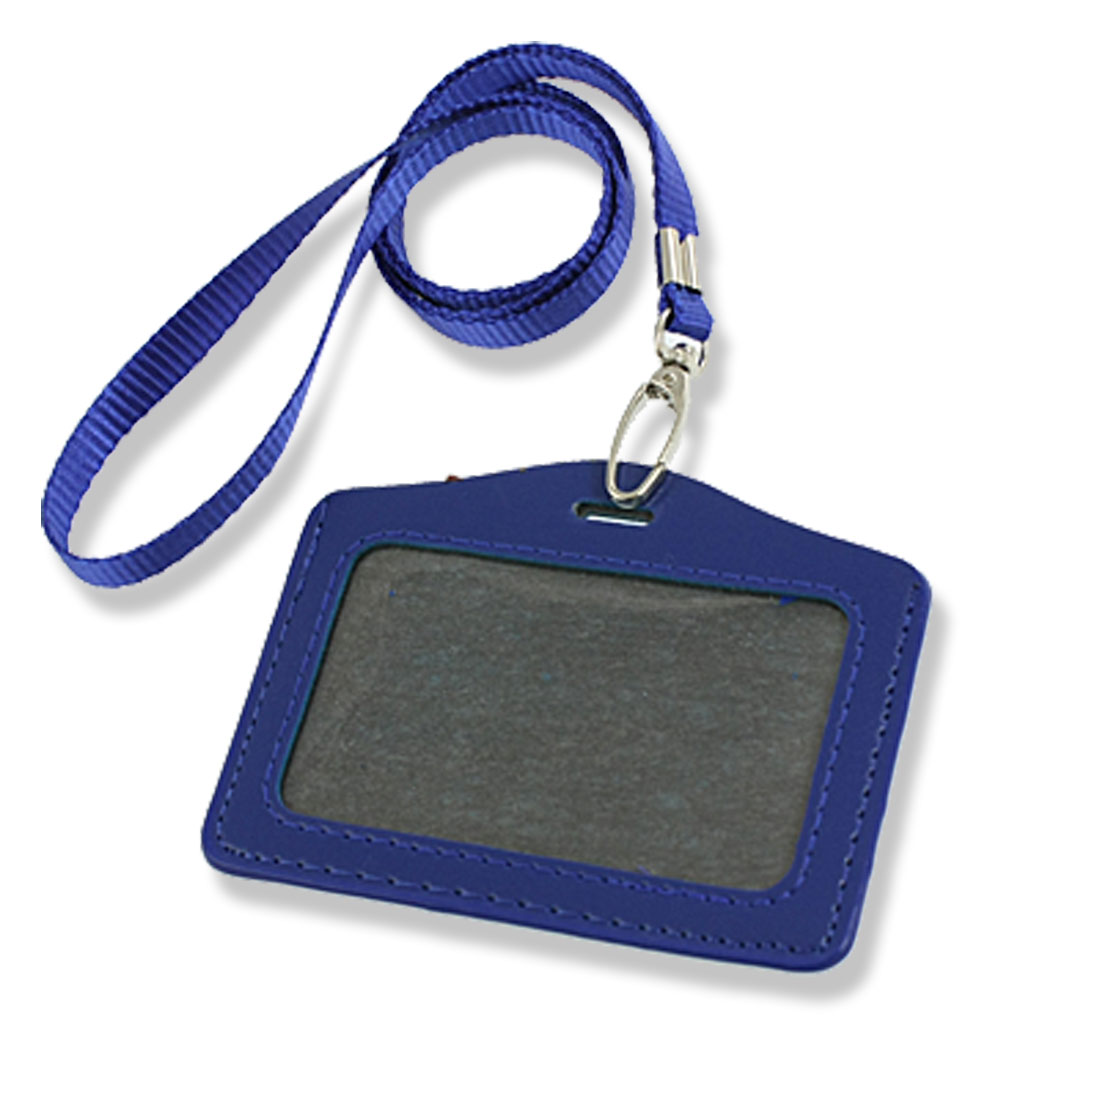 2 Pcs Faux Leather Business ID Badge Card Horizontal Holder Blue